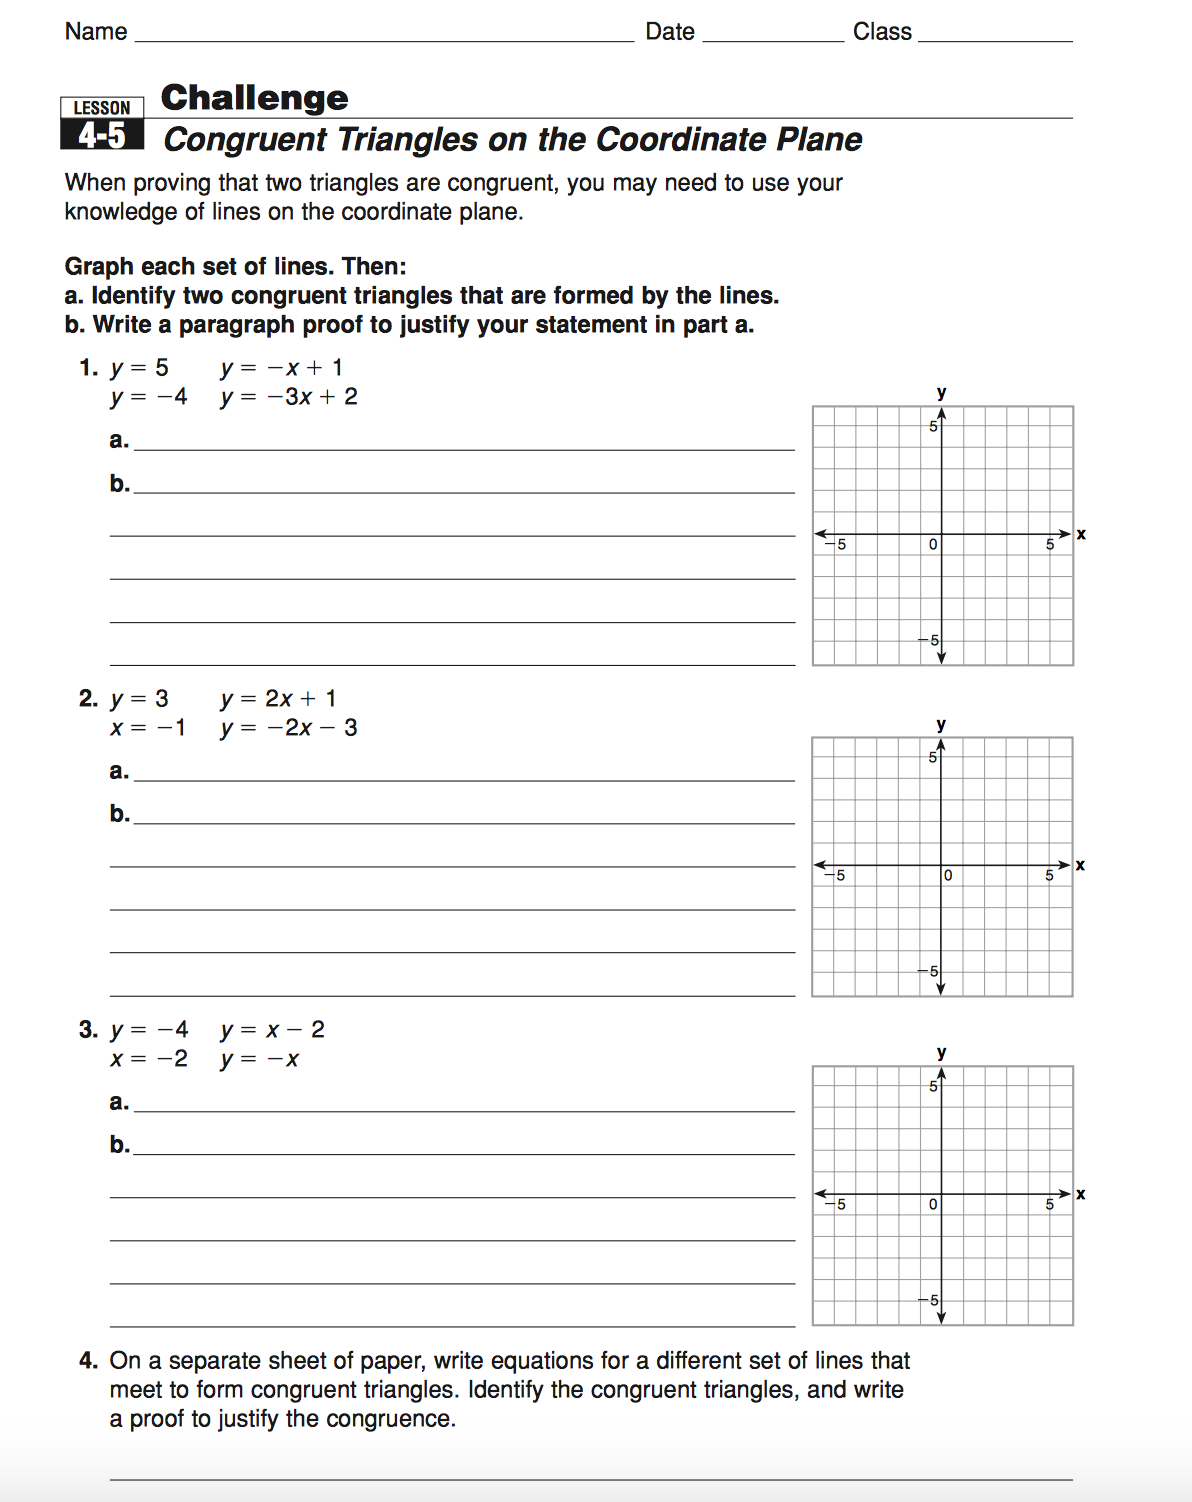 Geometry Mrs Murks Math Class – Geometry Worksheet Congruent Triangles Answers